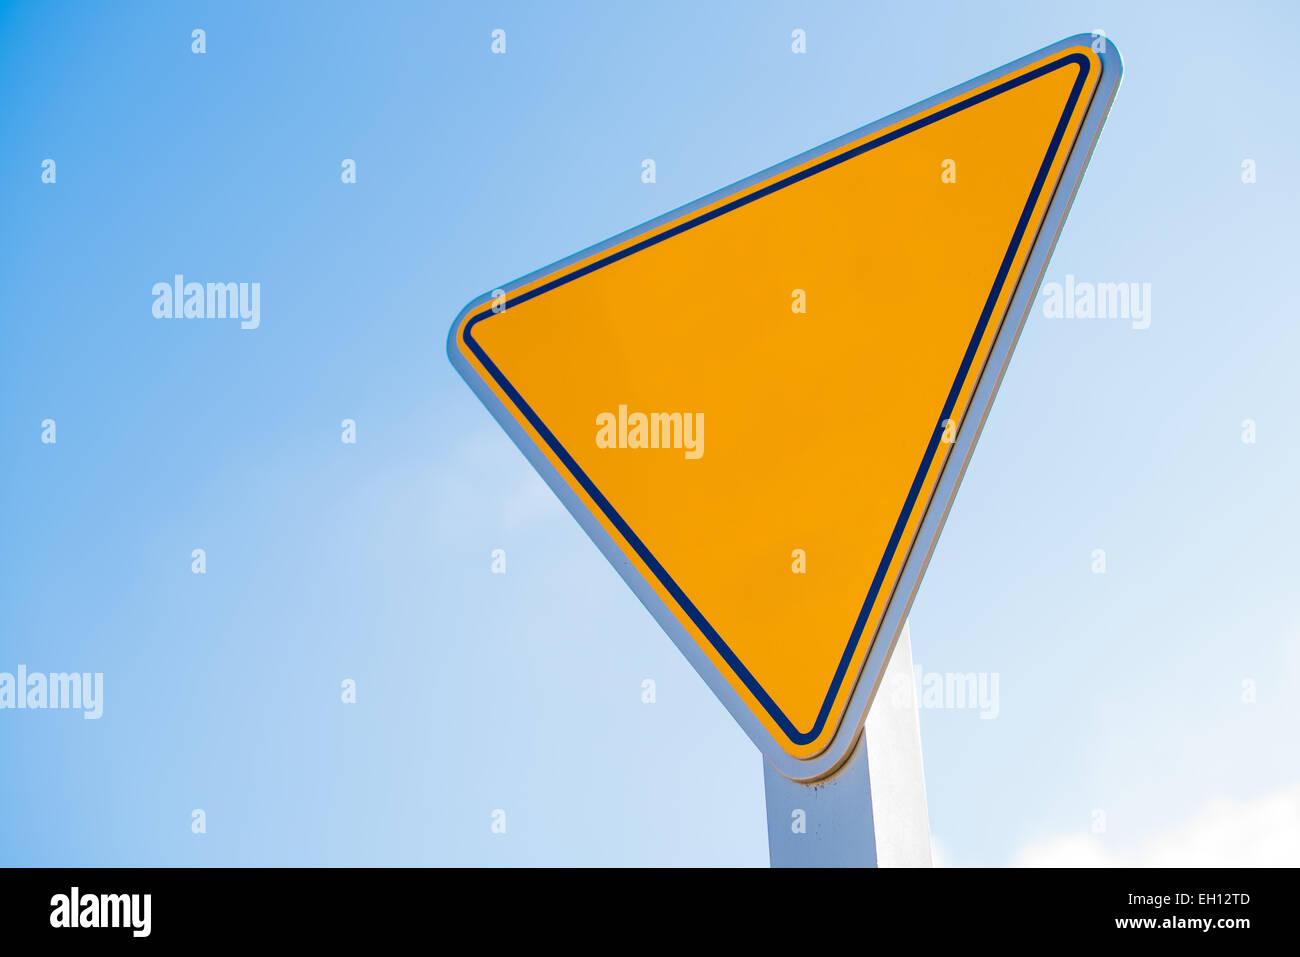 A blank yellow yield sign with copy space for text or graphics - Stock Image